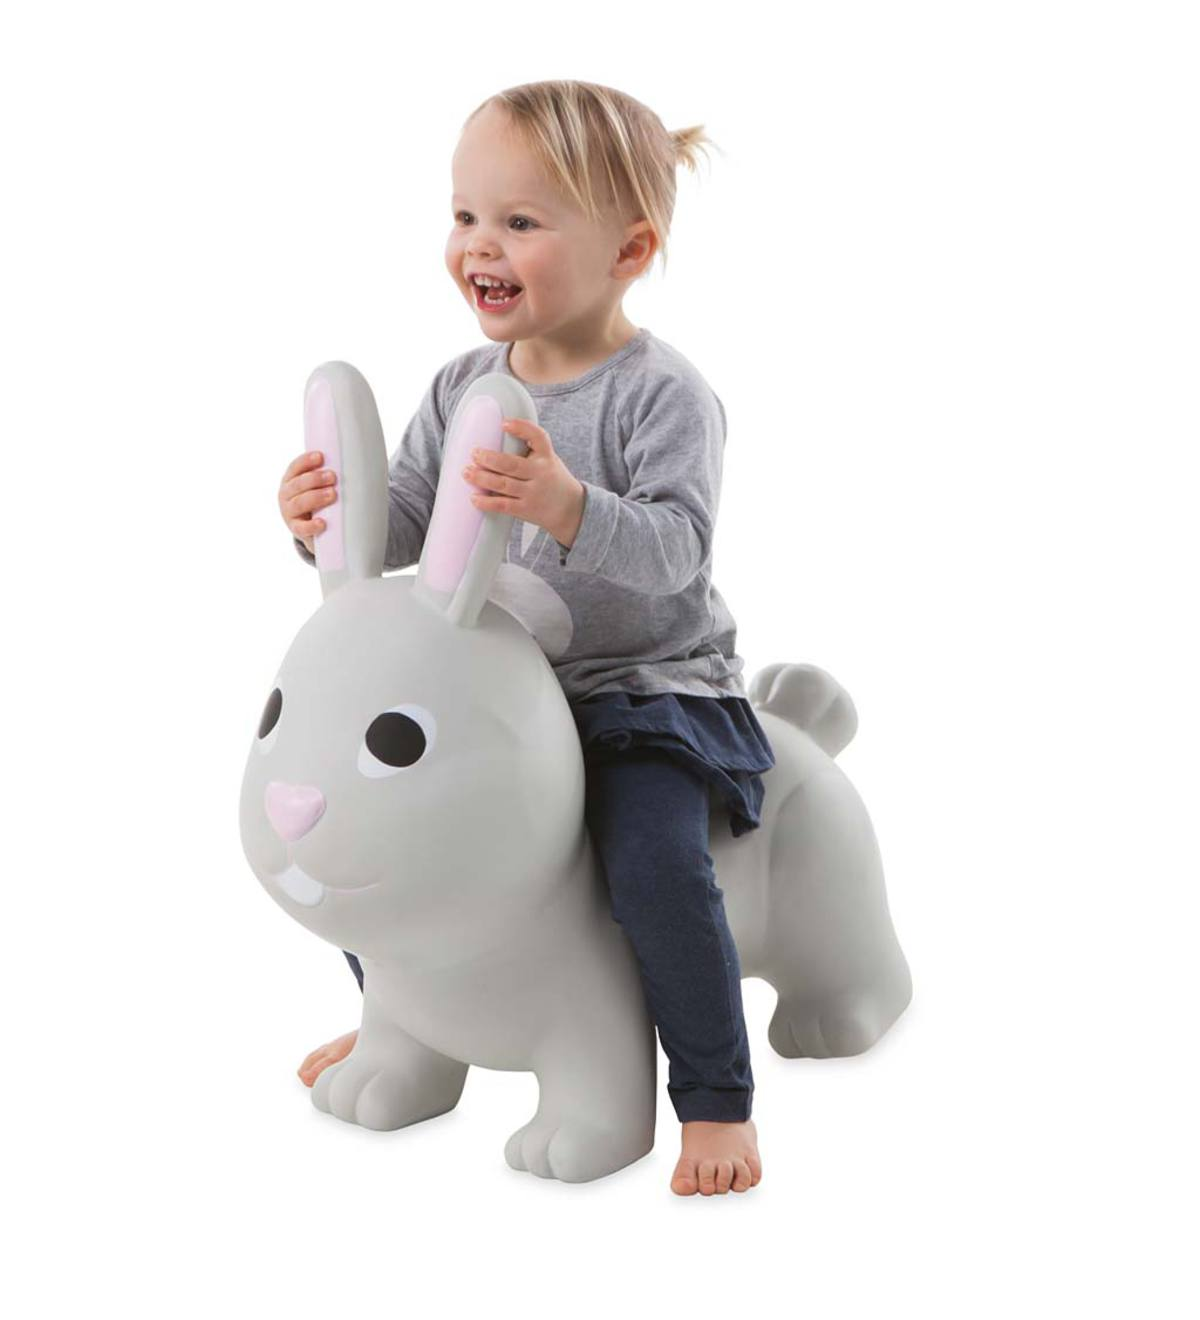 Bouncy Inflatable Toddler's Animal Jump-Along with Hand Pump and Birth Certificate!